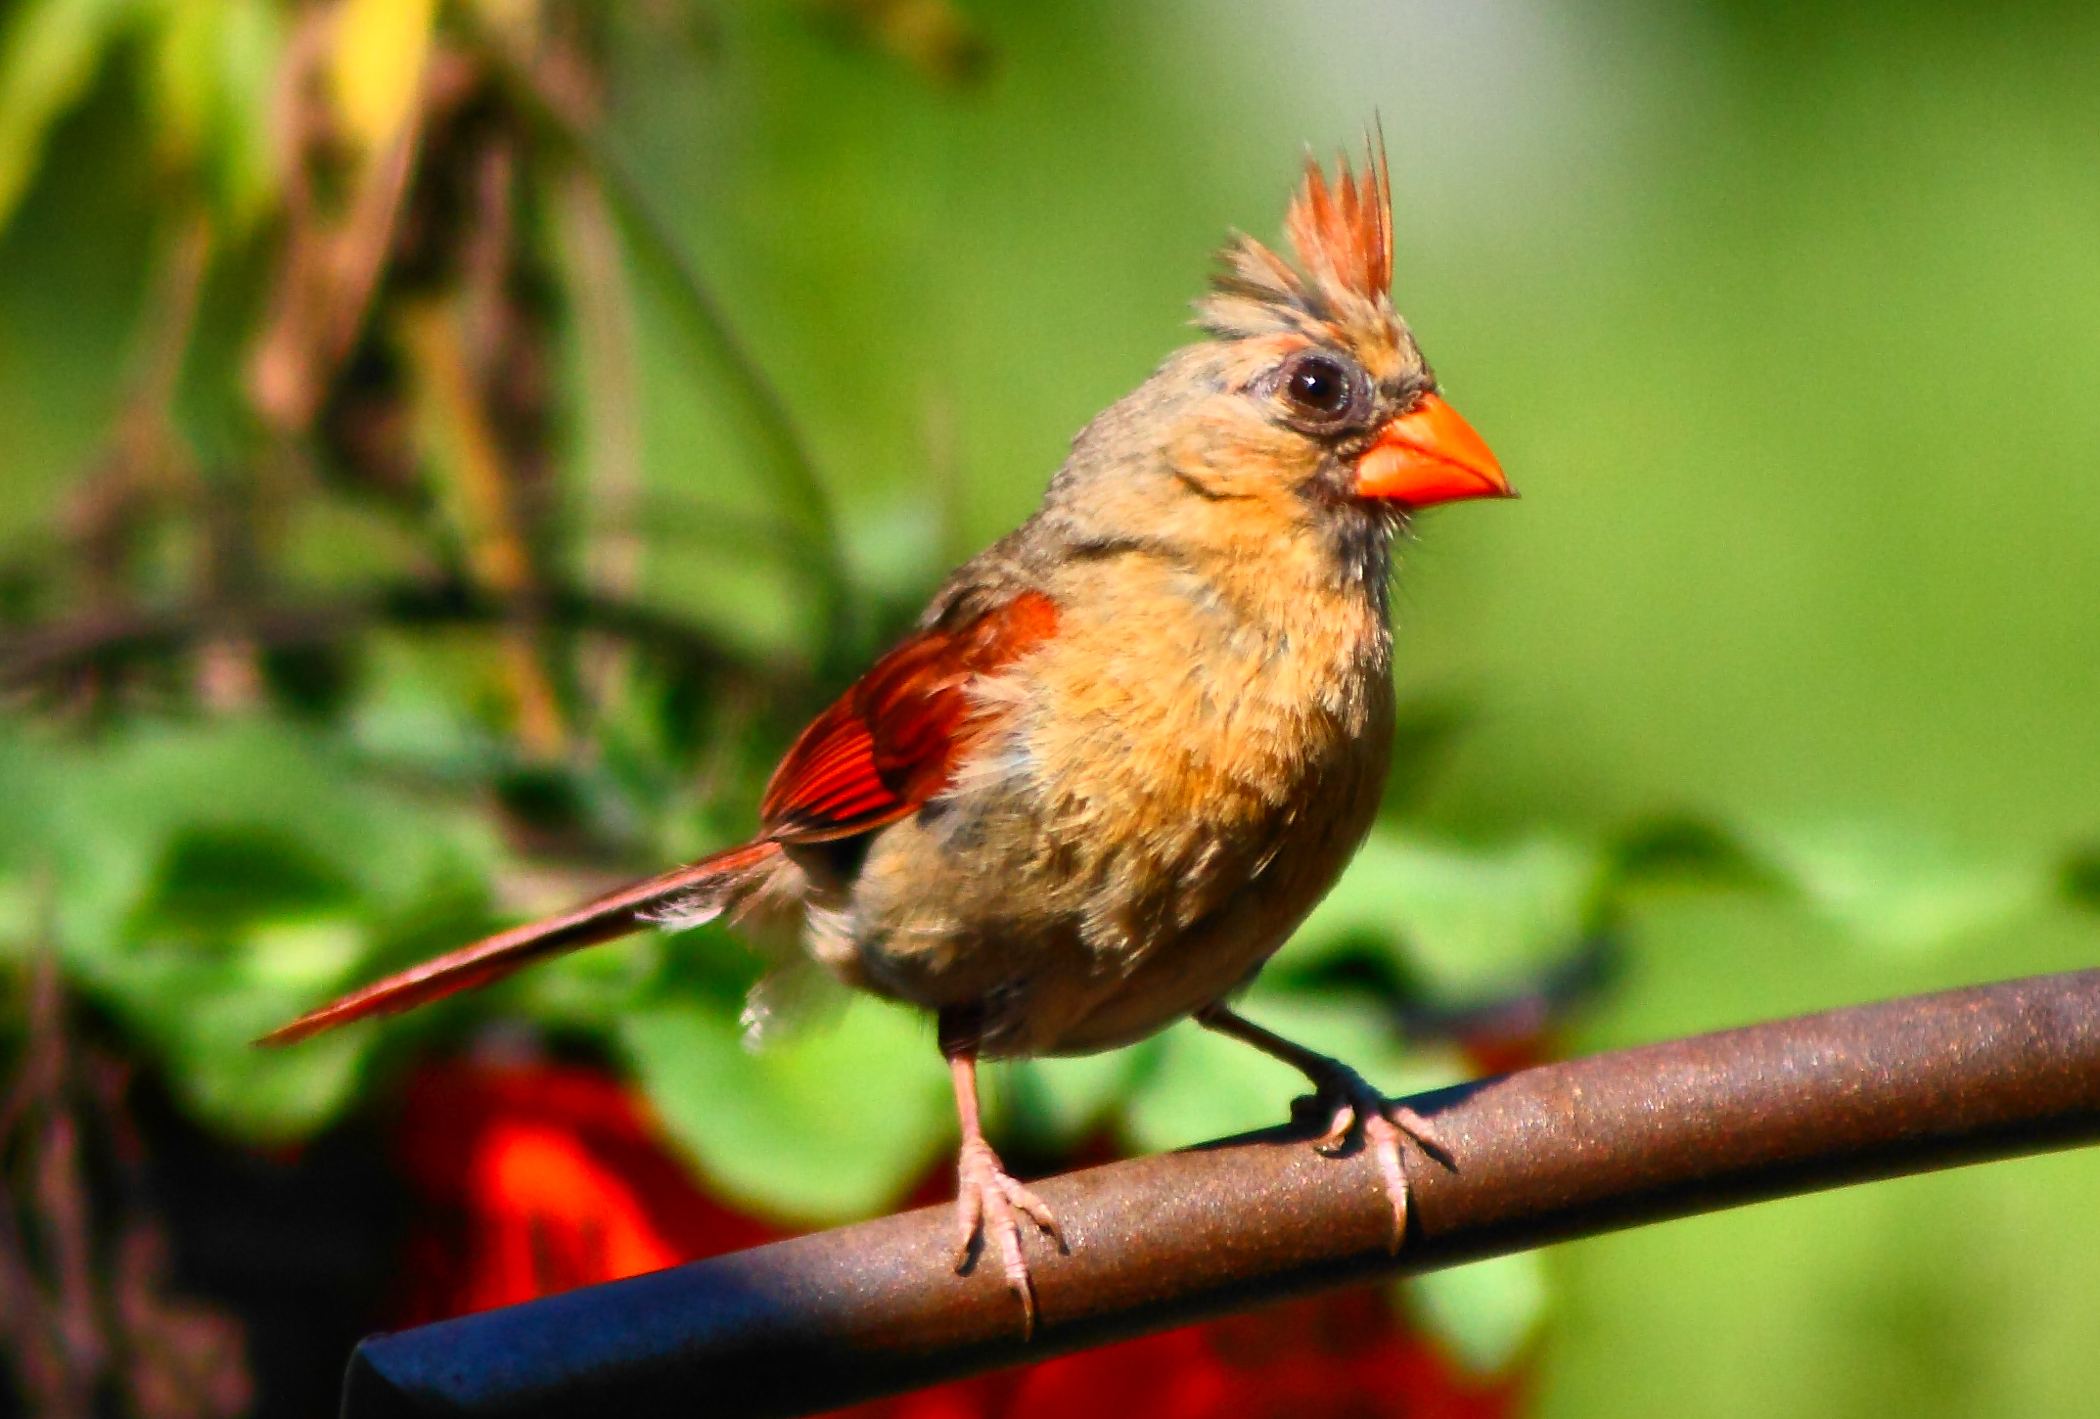 Wallpapers Female Cardinal Birds Birds Iphone Cardinal Birds 2100x1419